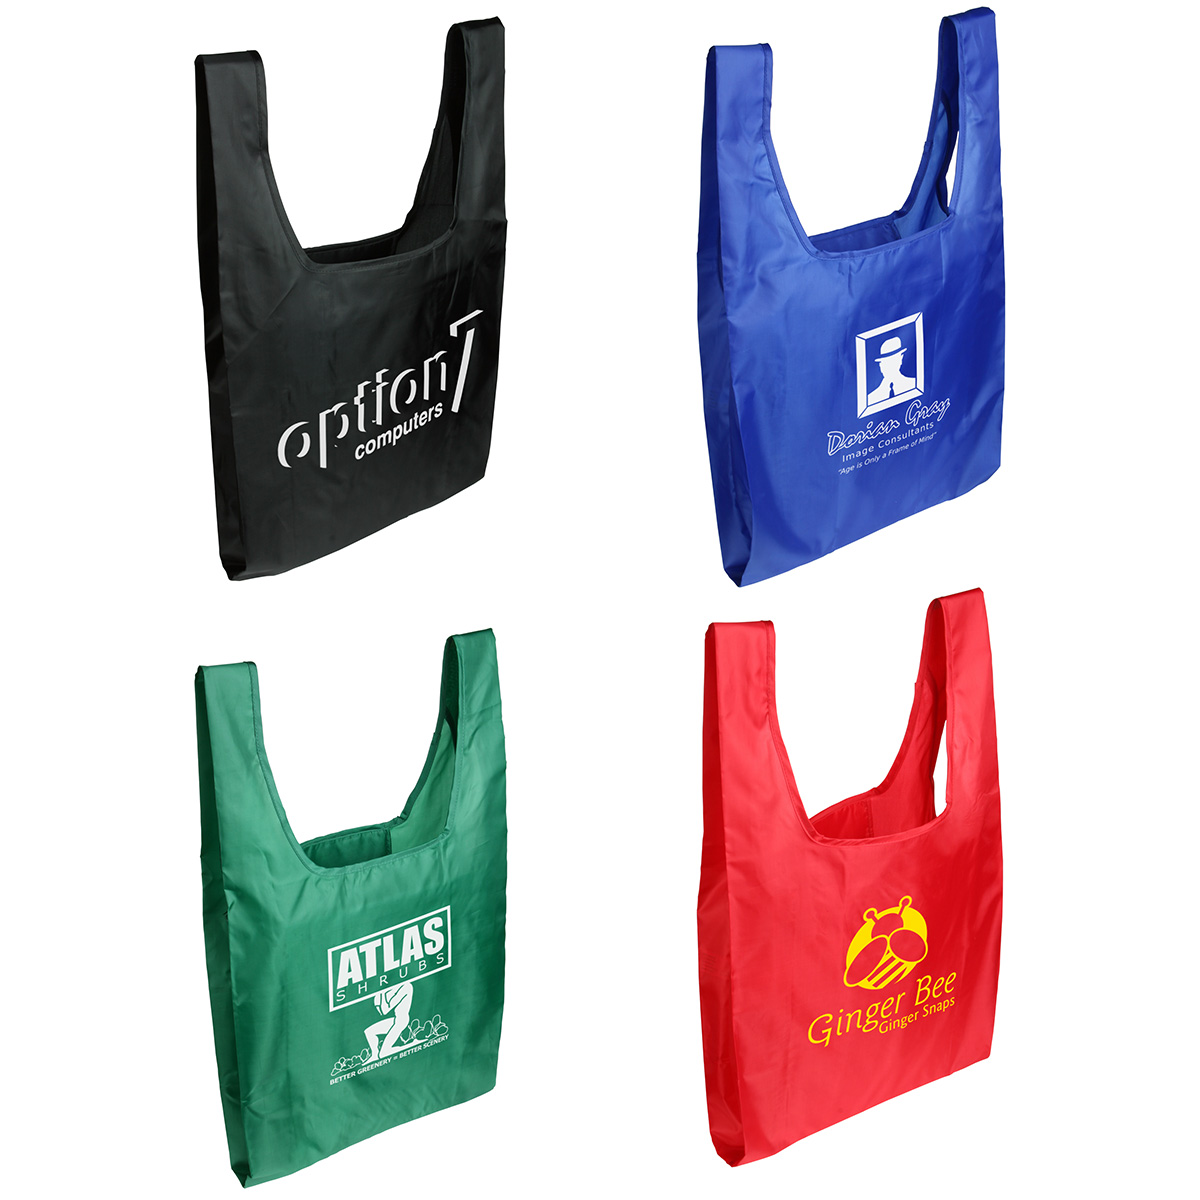 Tide Twister Folding Tote Bag, WBA-TT10, 1 Colour Imprint